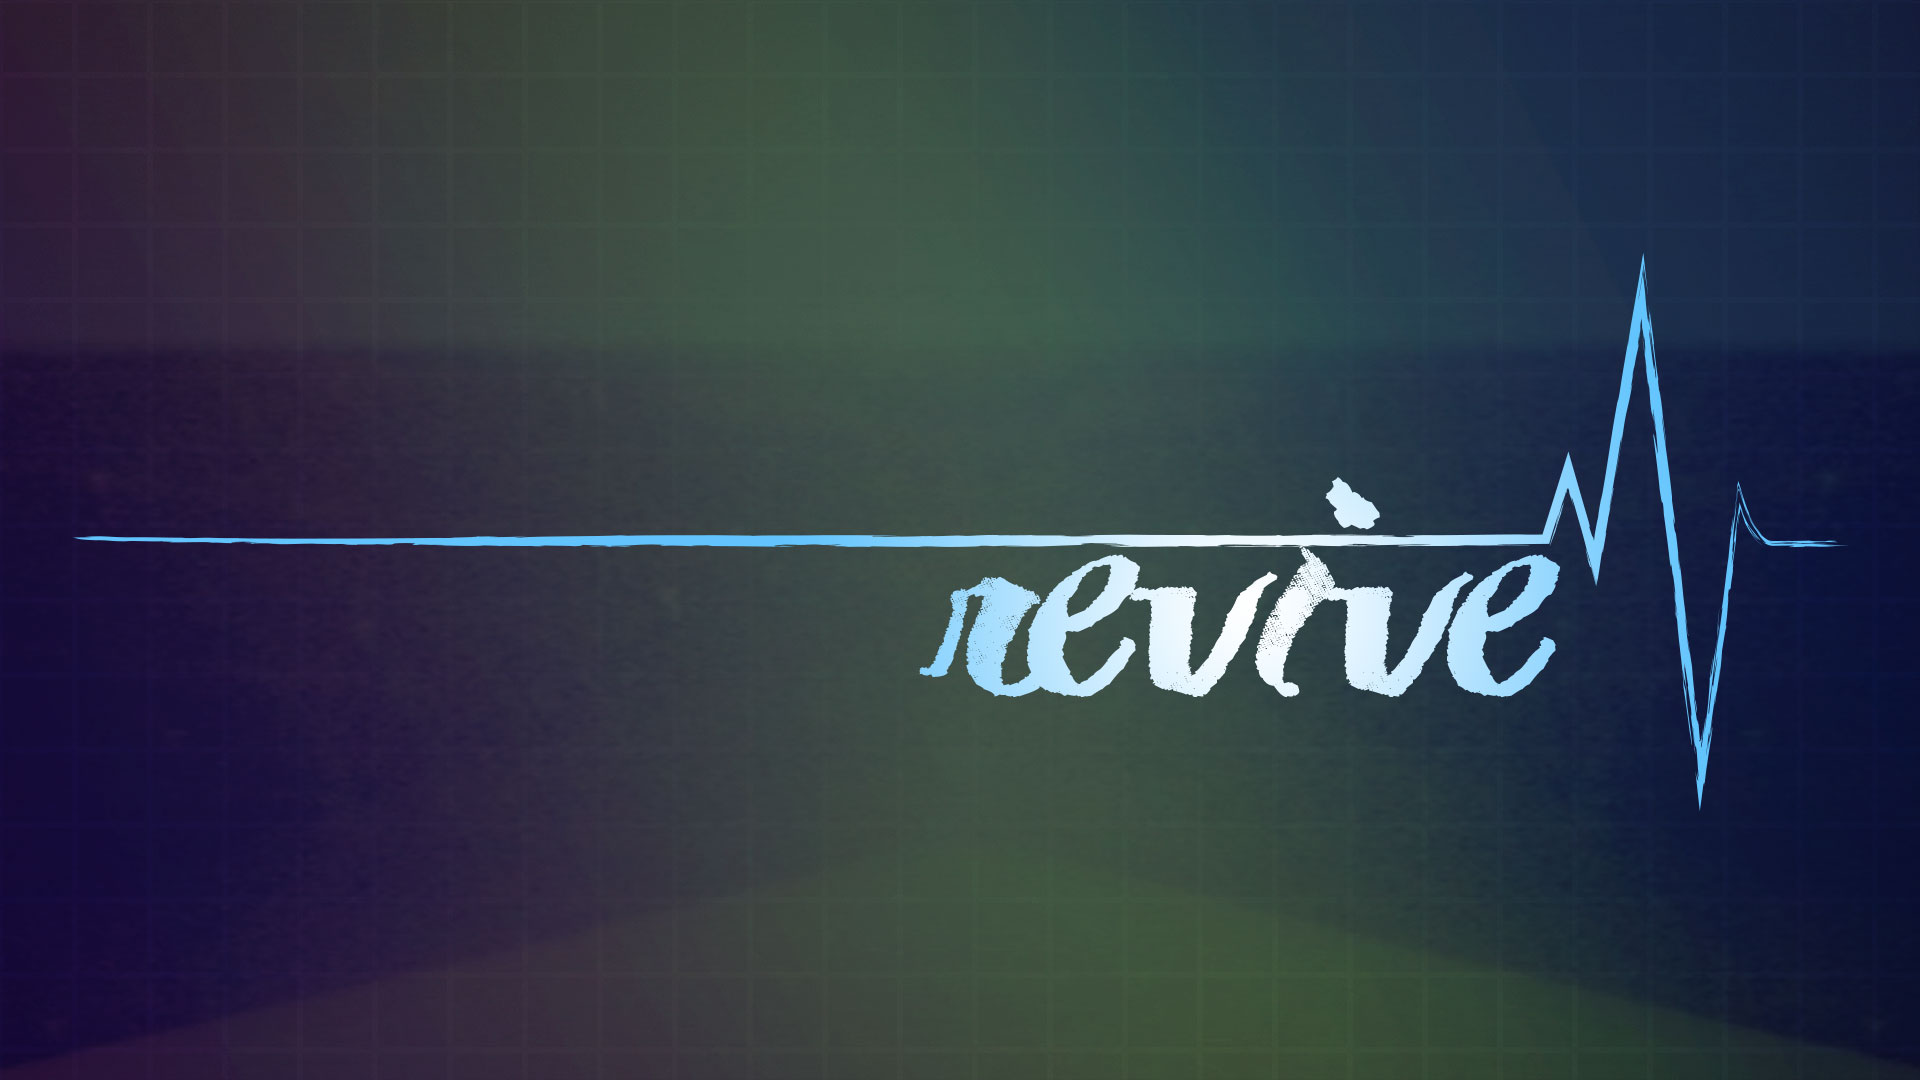 Listen to Revive